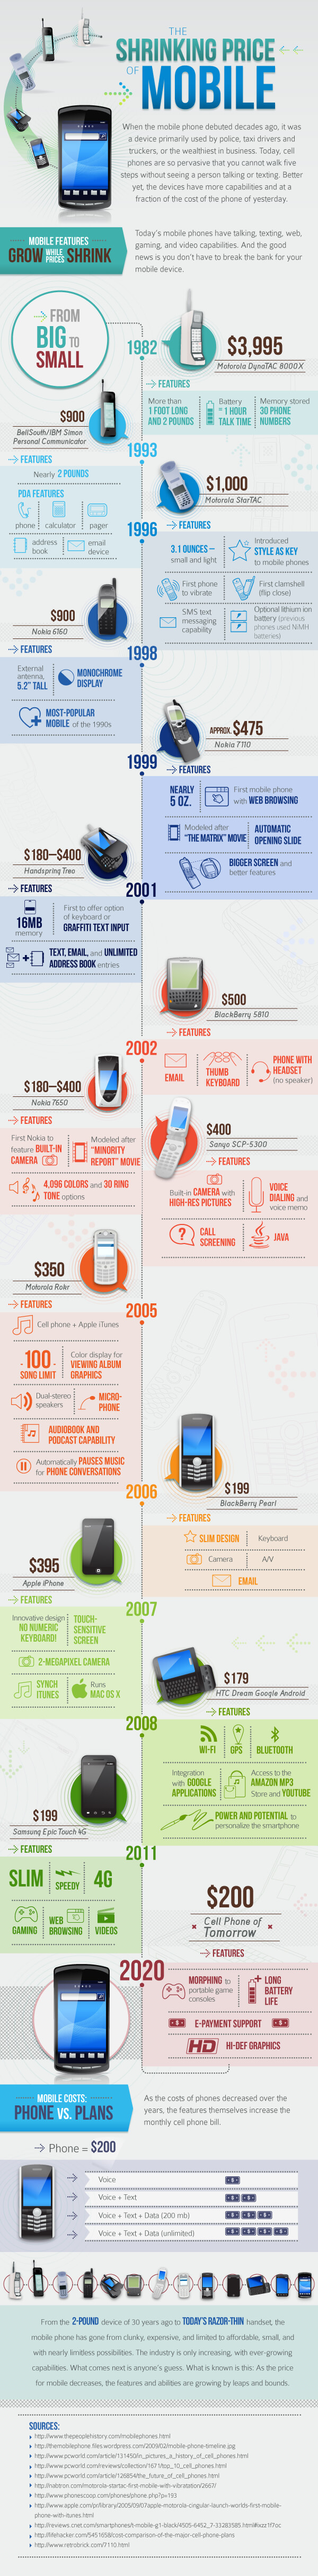 A visual history of mobiles Past present and futureinfographic